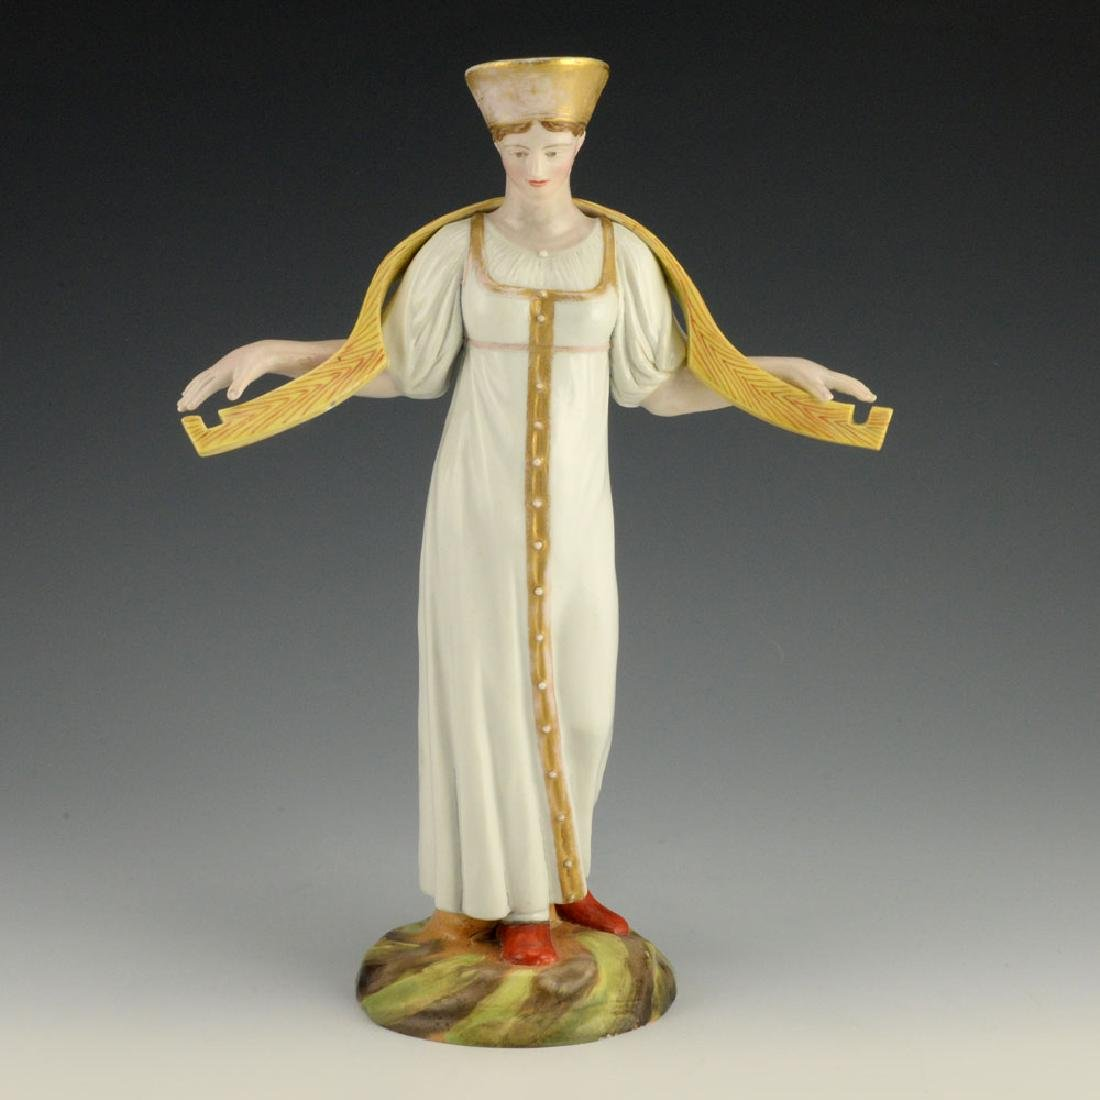 A Russian Gardner Porcelain Water Carrier Woman Statue